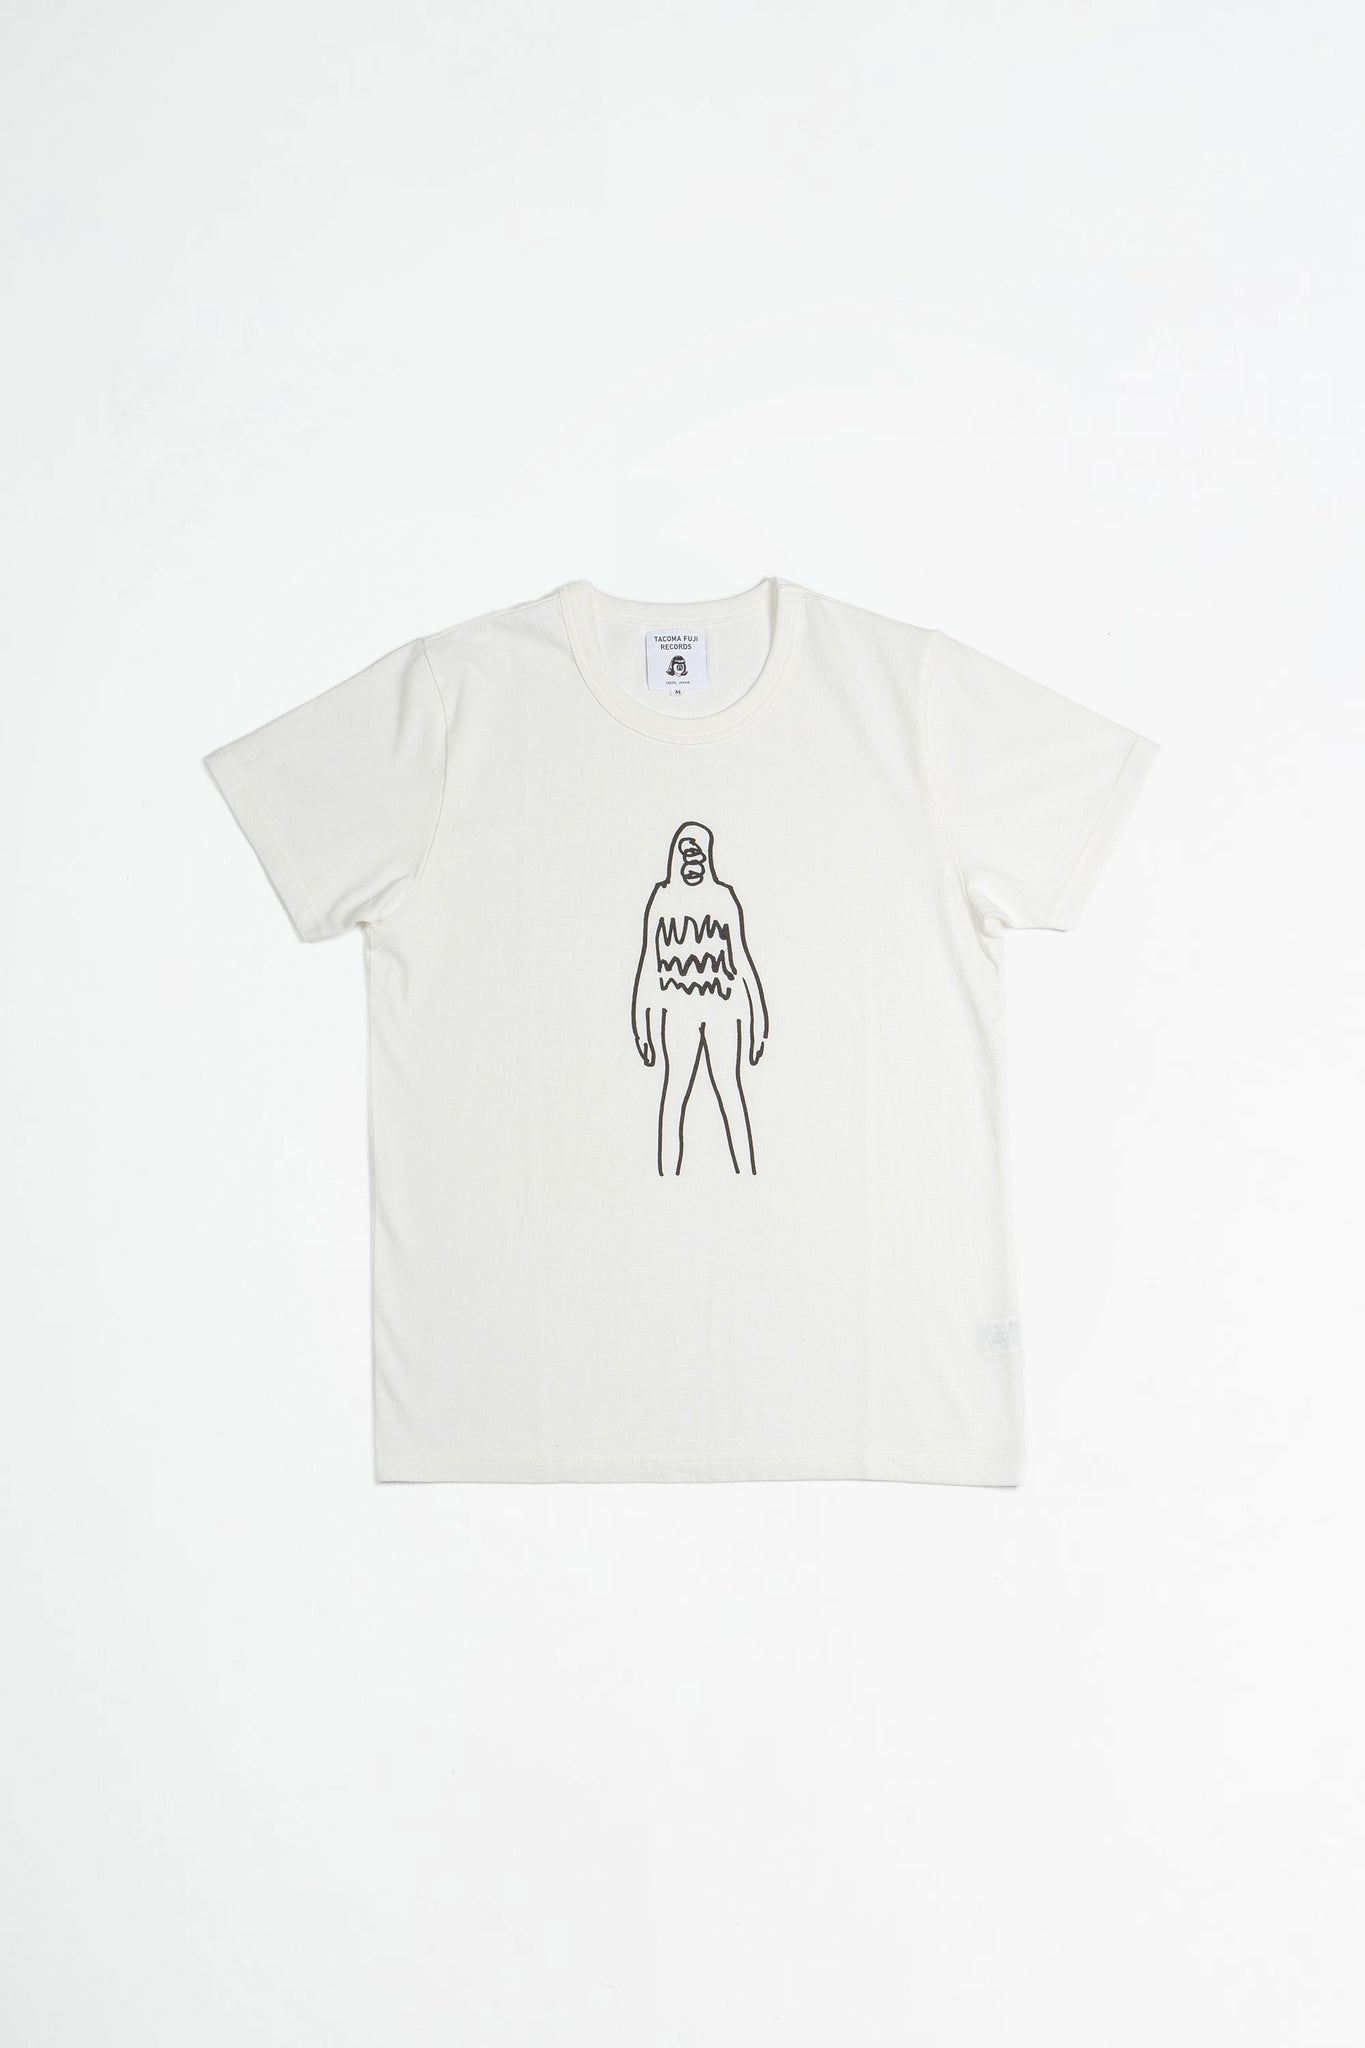 Bacoa t-shirt white